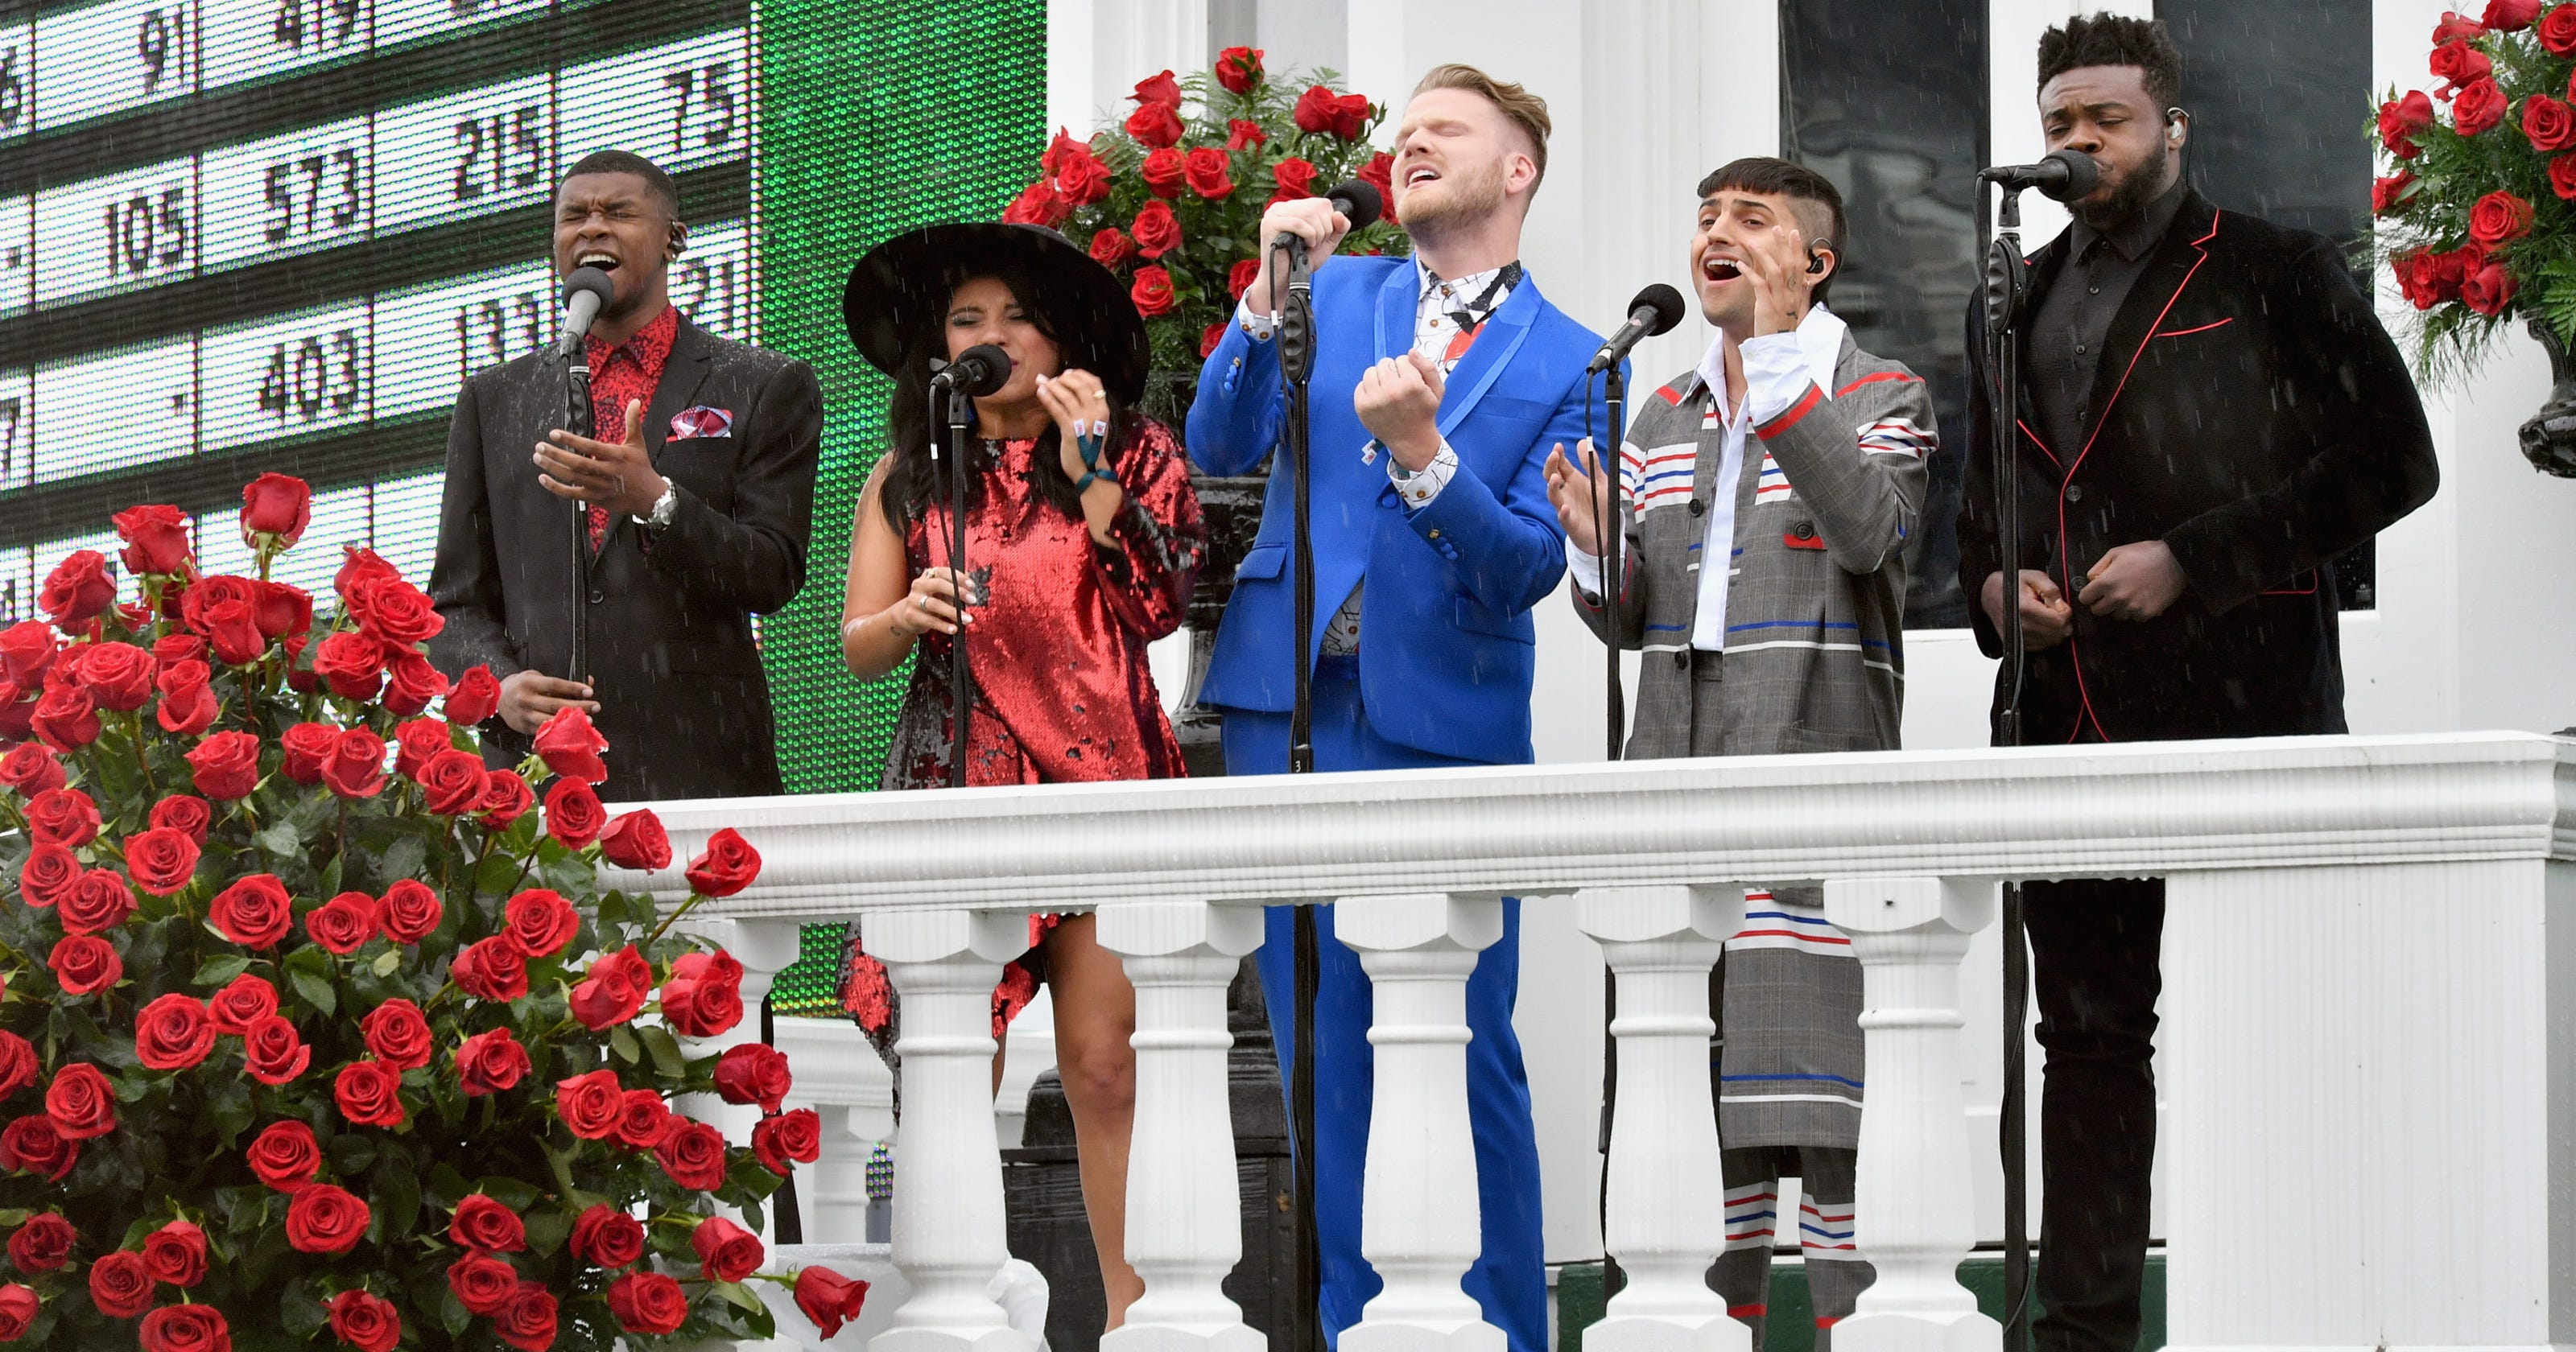 Pentatonix Making Christmas.Pentatonix A Not So Silent Night Holiday Special What To